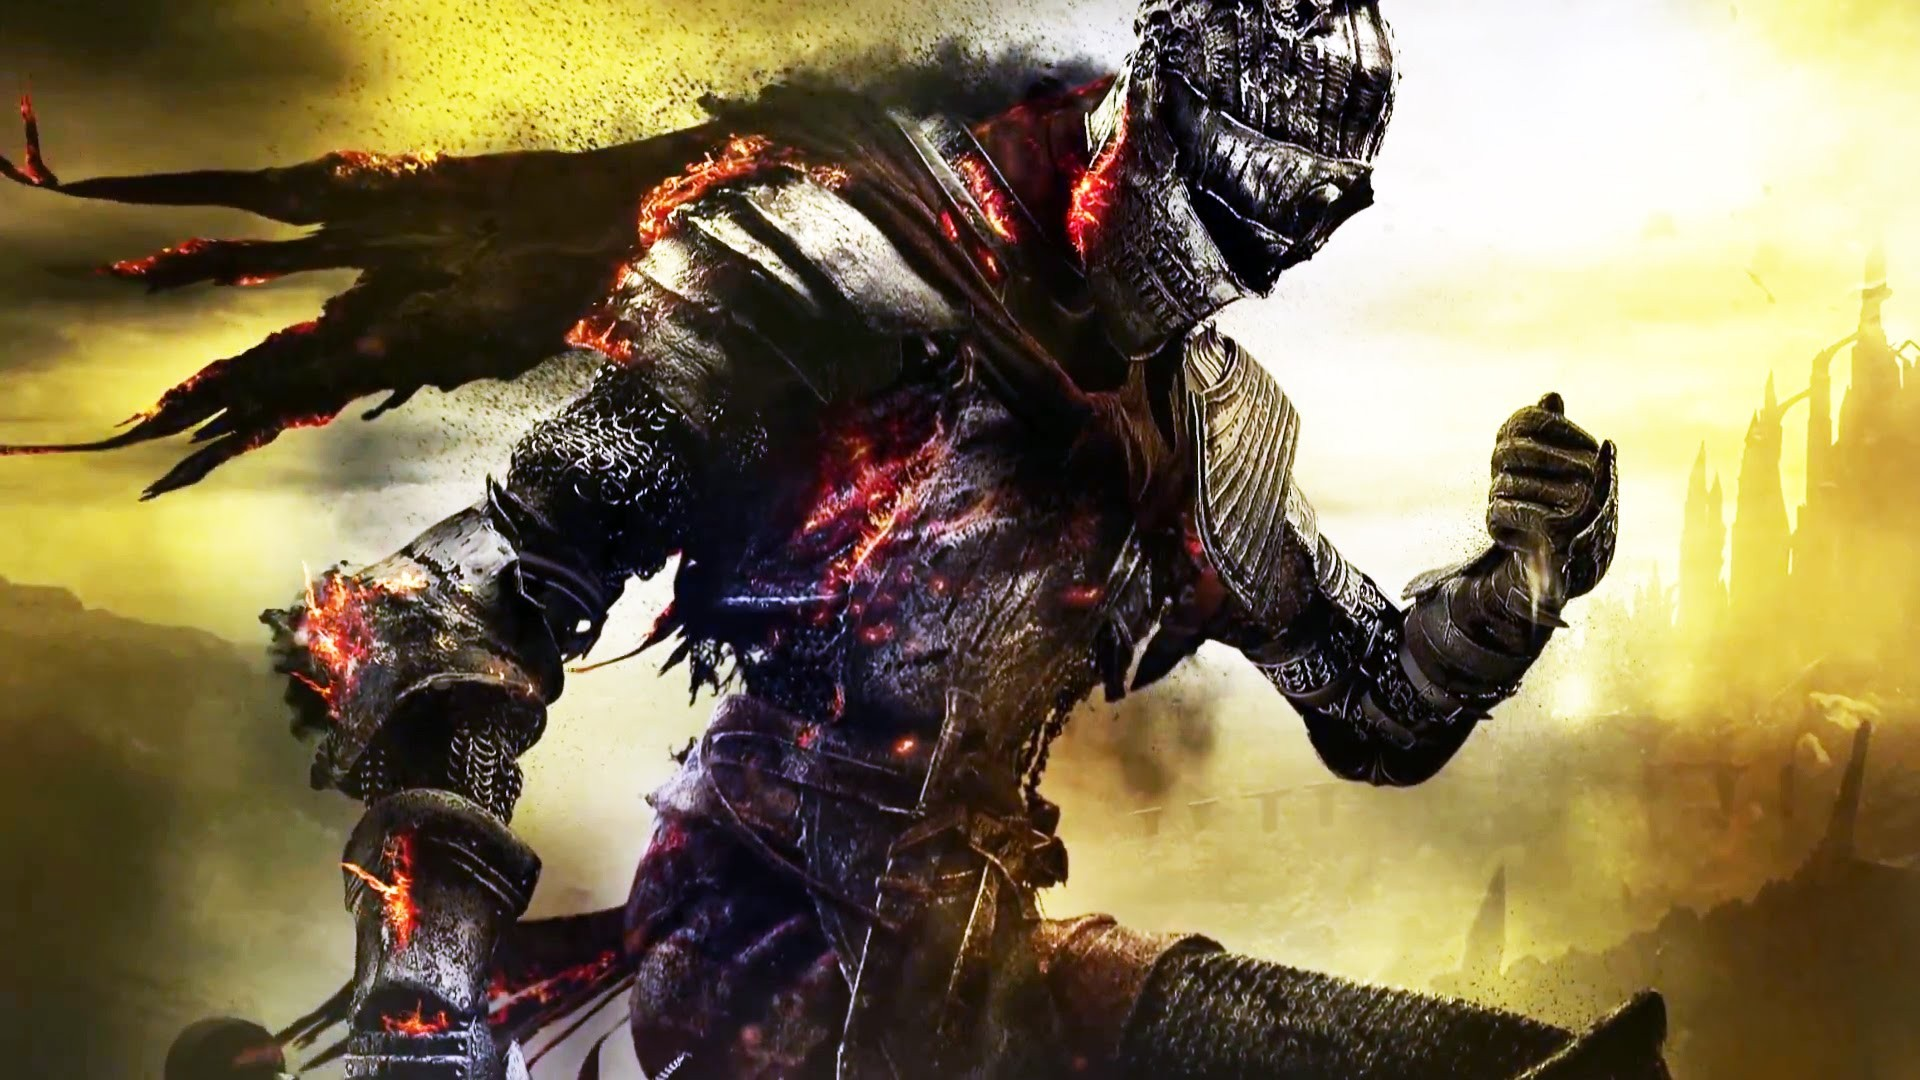 Dark Souls 3 Wallpaper 1920x1080 ·① Download Free Awesome